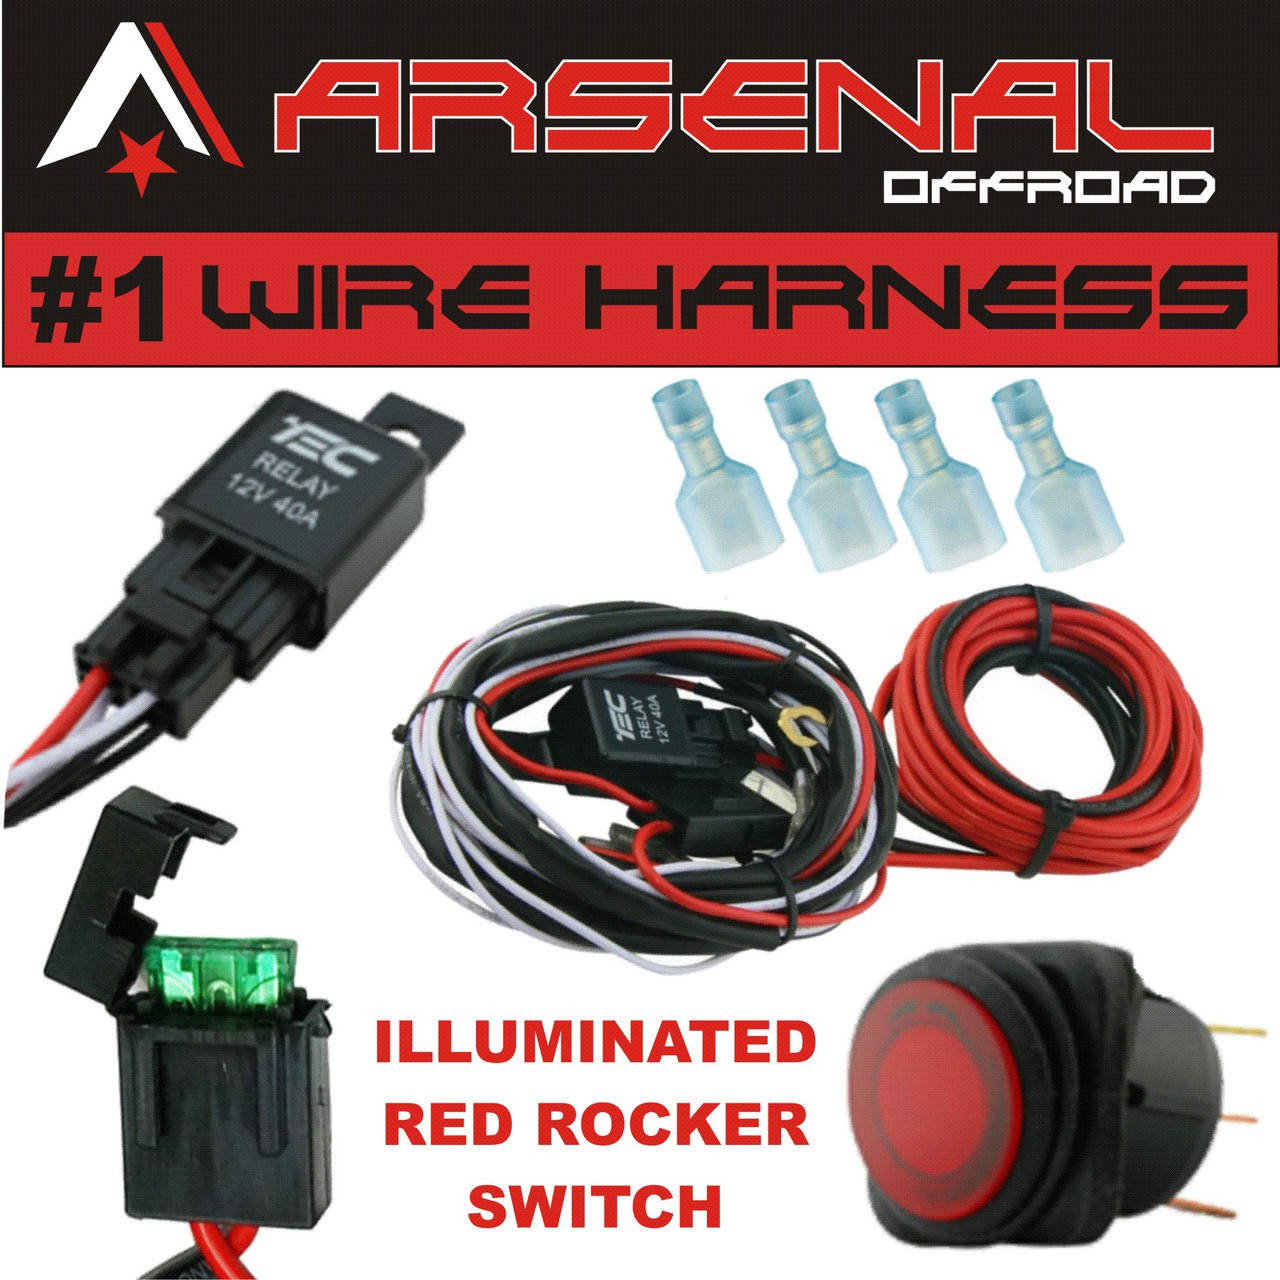 1 40 Amp Universal Wiring Harness Comes With Relay Illuminated Details About 12v 40a Switch Control Kit For Led On Off Rocker Offroad Light Bars And Work Lights Jeep Atv Utv Truck